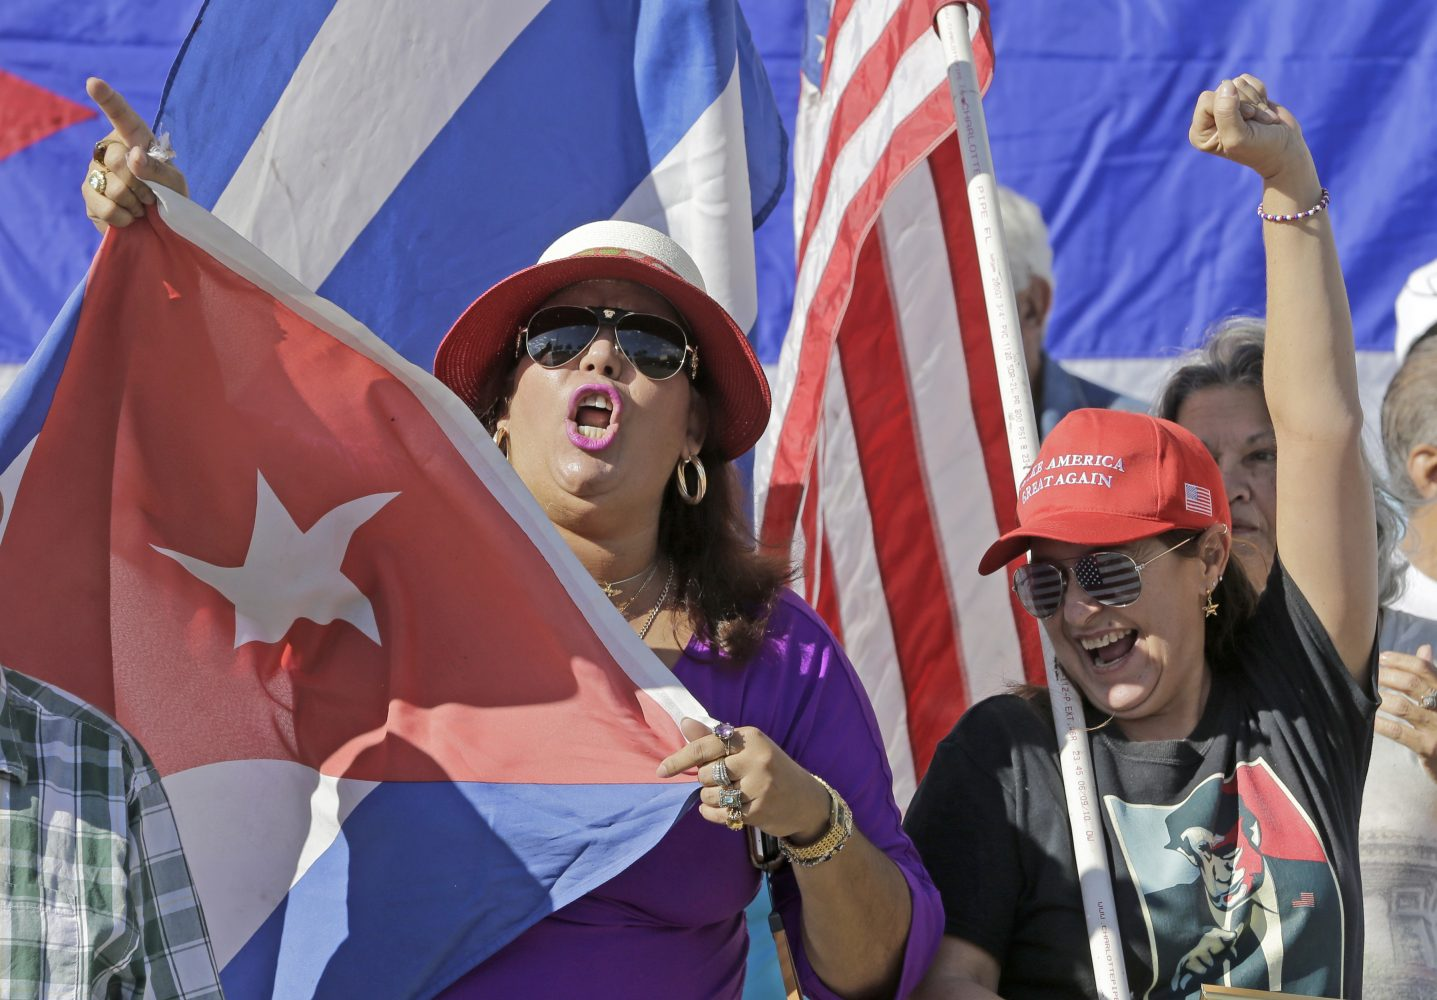 Cuban-Americans Dulce Martinez, left, and Alida Rivero chant pro-Trump slogans Friday, Jan. 20, 2017, in the Little Havana area in Miami, before President-elect Donald Trump is sworn in as the 45th president of the United States. (AP Photo/Alan Diaz)